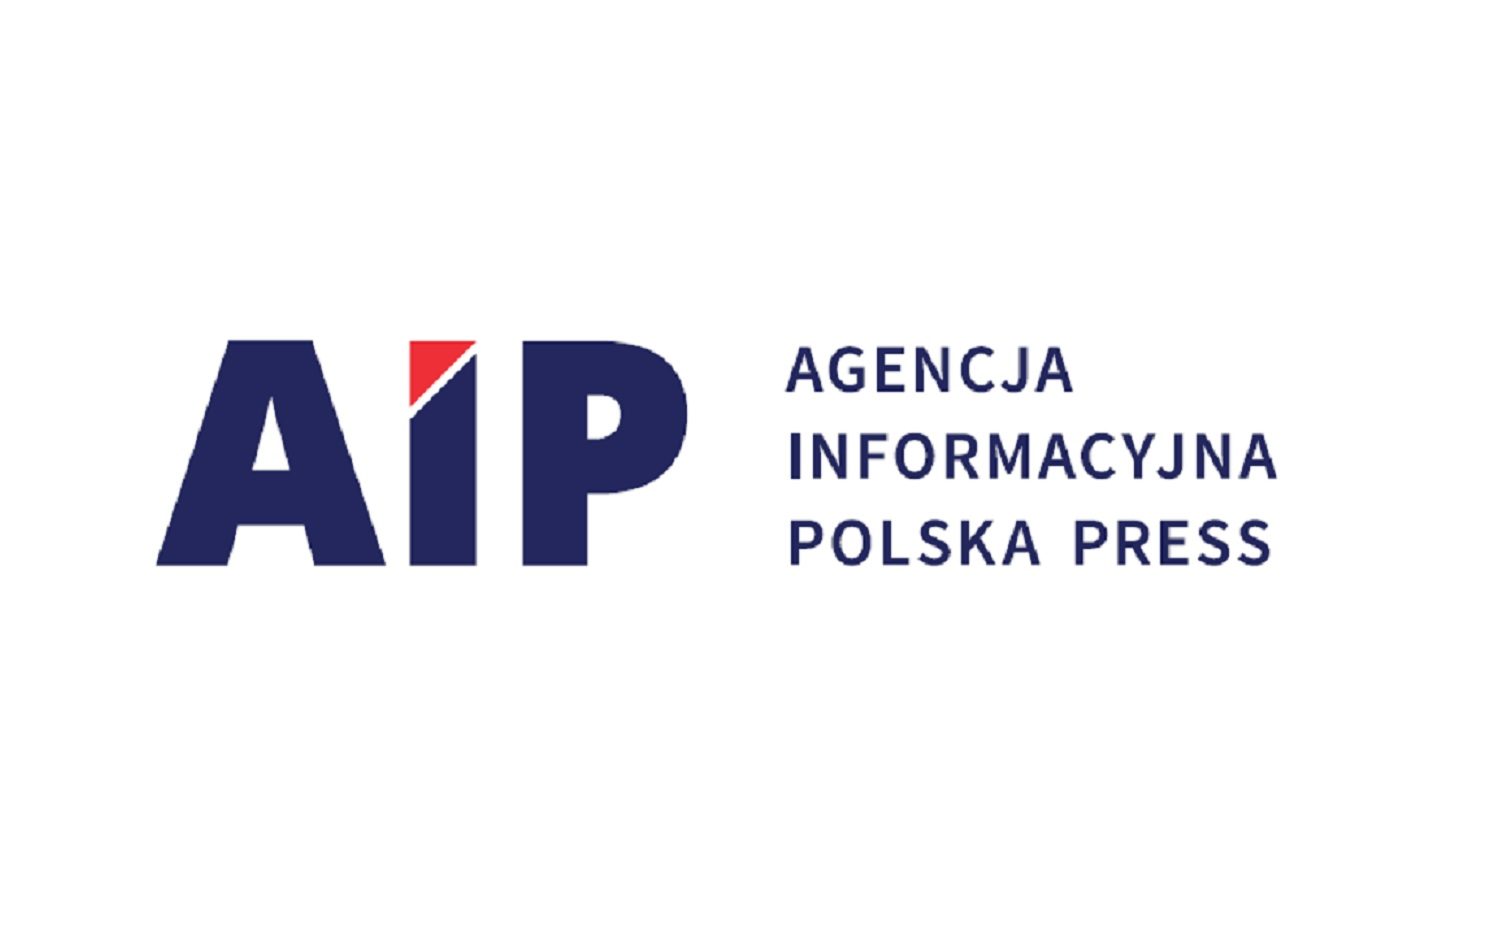 AIP  aip24.pl